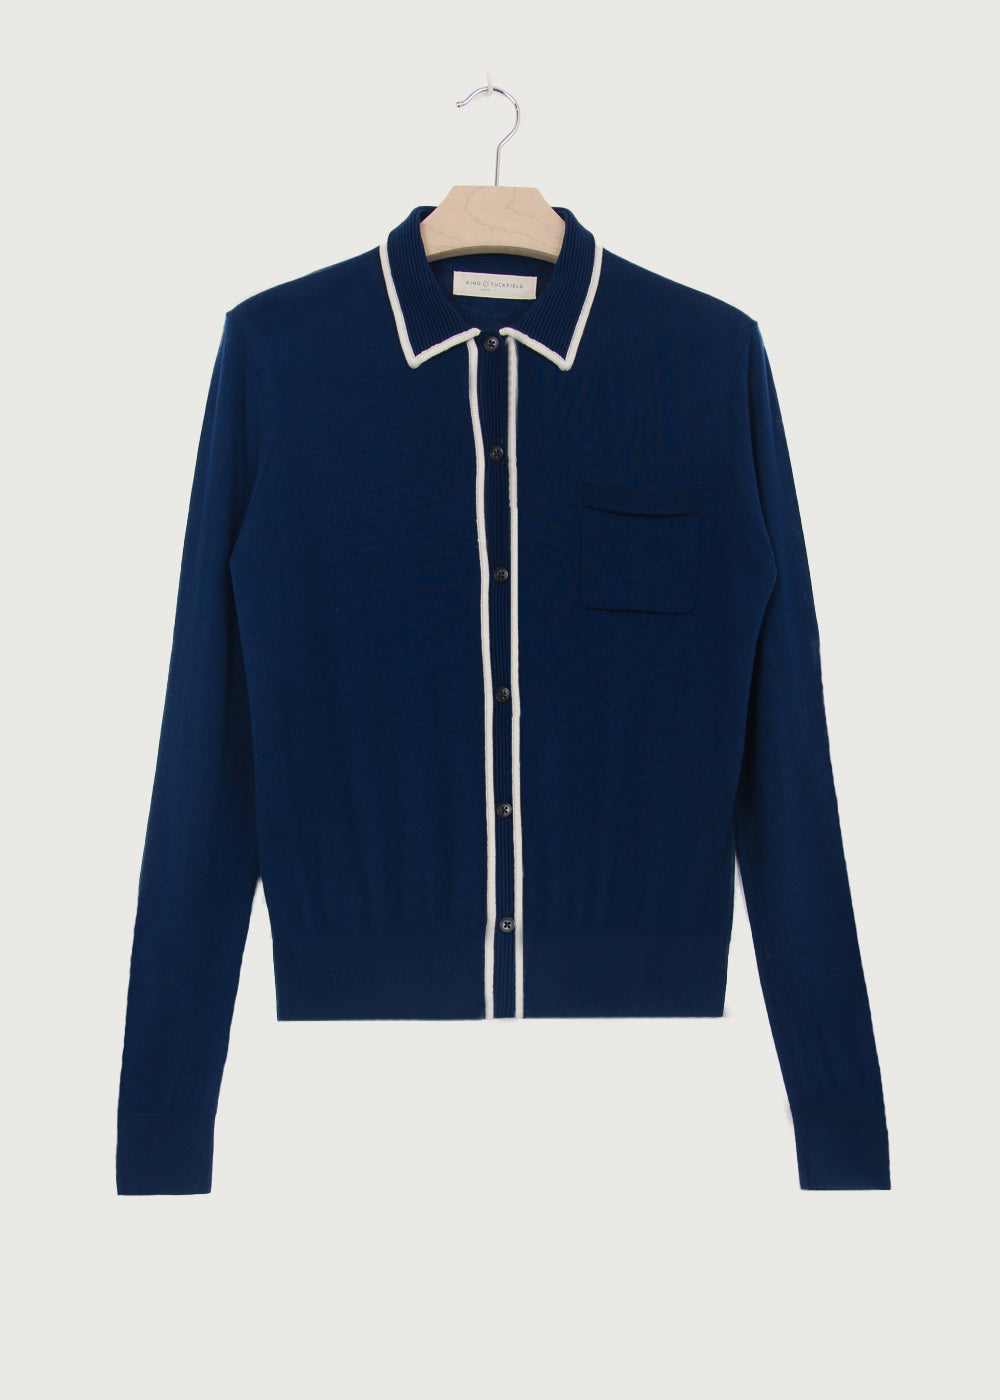 Navy Knitted Shirt - King & Tuckfield